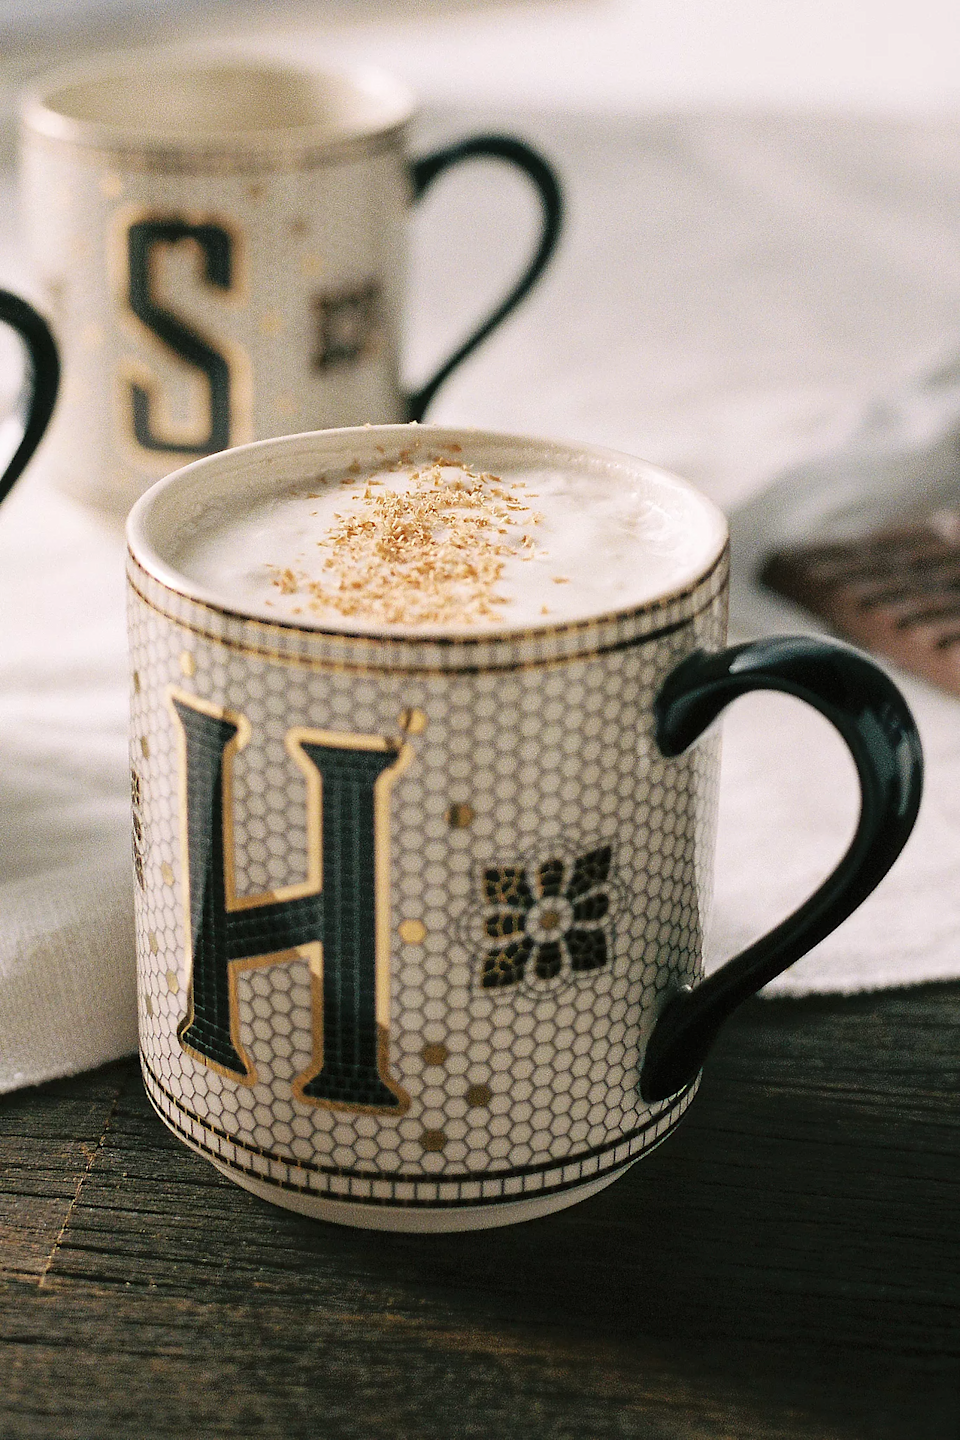 """<h3>Anthropologie Tiled Margot Monogram Mug</h3><br>Is it just us, or does coffee taste better out of a pretty mug with our very own initial emblazoned on the front? <br><br><em>Shop <strong><a href=""""https://www.anthropologie.com/"""" rel=""""nofollow noopener"""" target=""""_blank"""" data-ylk=""""slk:Anthropologie"""" class=""""link rapid-noclick-resp"""">Anthropologie</a></strong></em><br><br><strong>Anthropologie</strong> Tiled Margot Monogram Mug, $, available at <a href=""""https://go.skimresources.com/?id=30283X879131&url=https%3A%2F%2Fwww.anthropologie.com%2Fshop%2Ftiled-margot-monogram-mug"""" rel=""""nofollow noopener"""" target=""""_blank"""" data-ylk=""""slk:Anthropologie"""" class=""""link rapid-noclick-resp"""">Anthropologie</a>"""